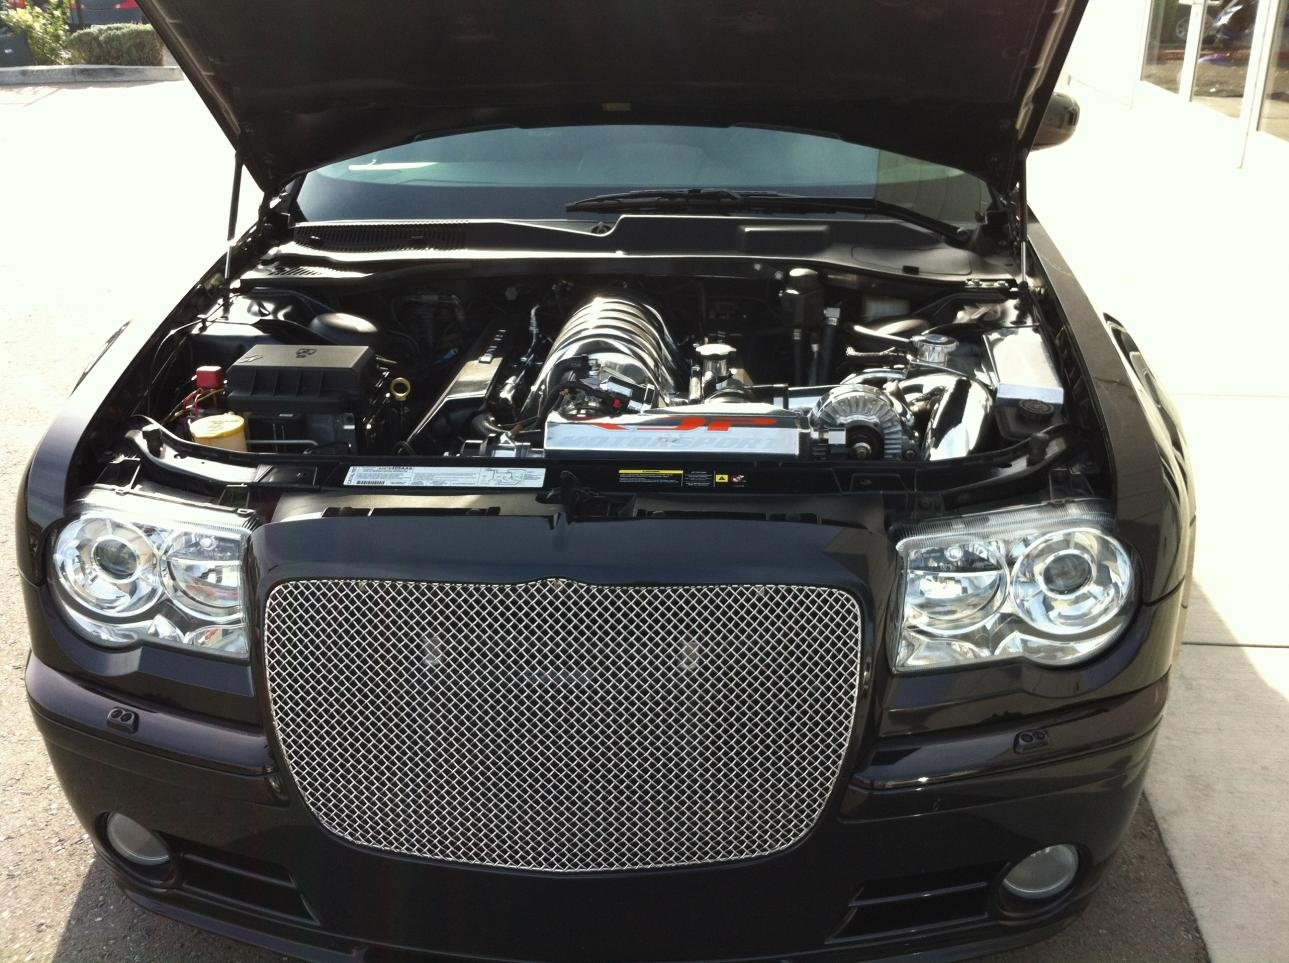 news uae for in sale chrysler drive a srt so bought arabia we tag the